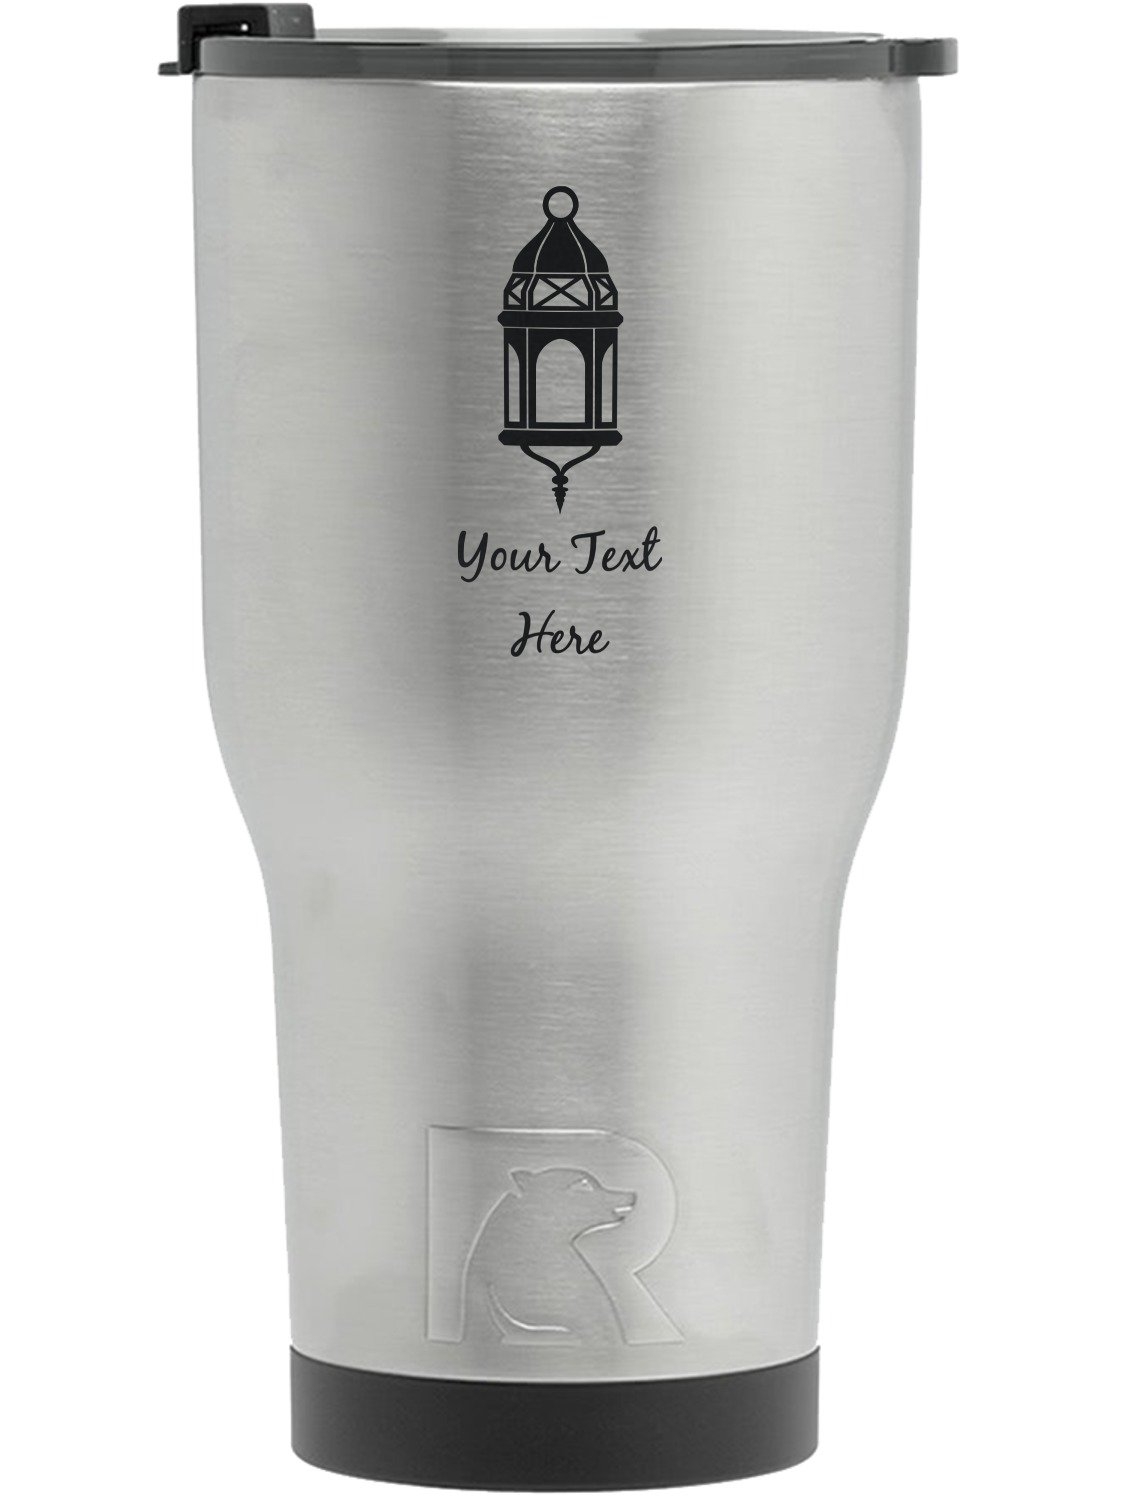 Moroccan Lanterns RTIC Tumbler - Silver - Engraved Front (Personalized)